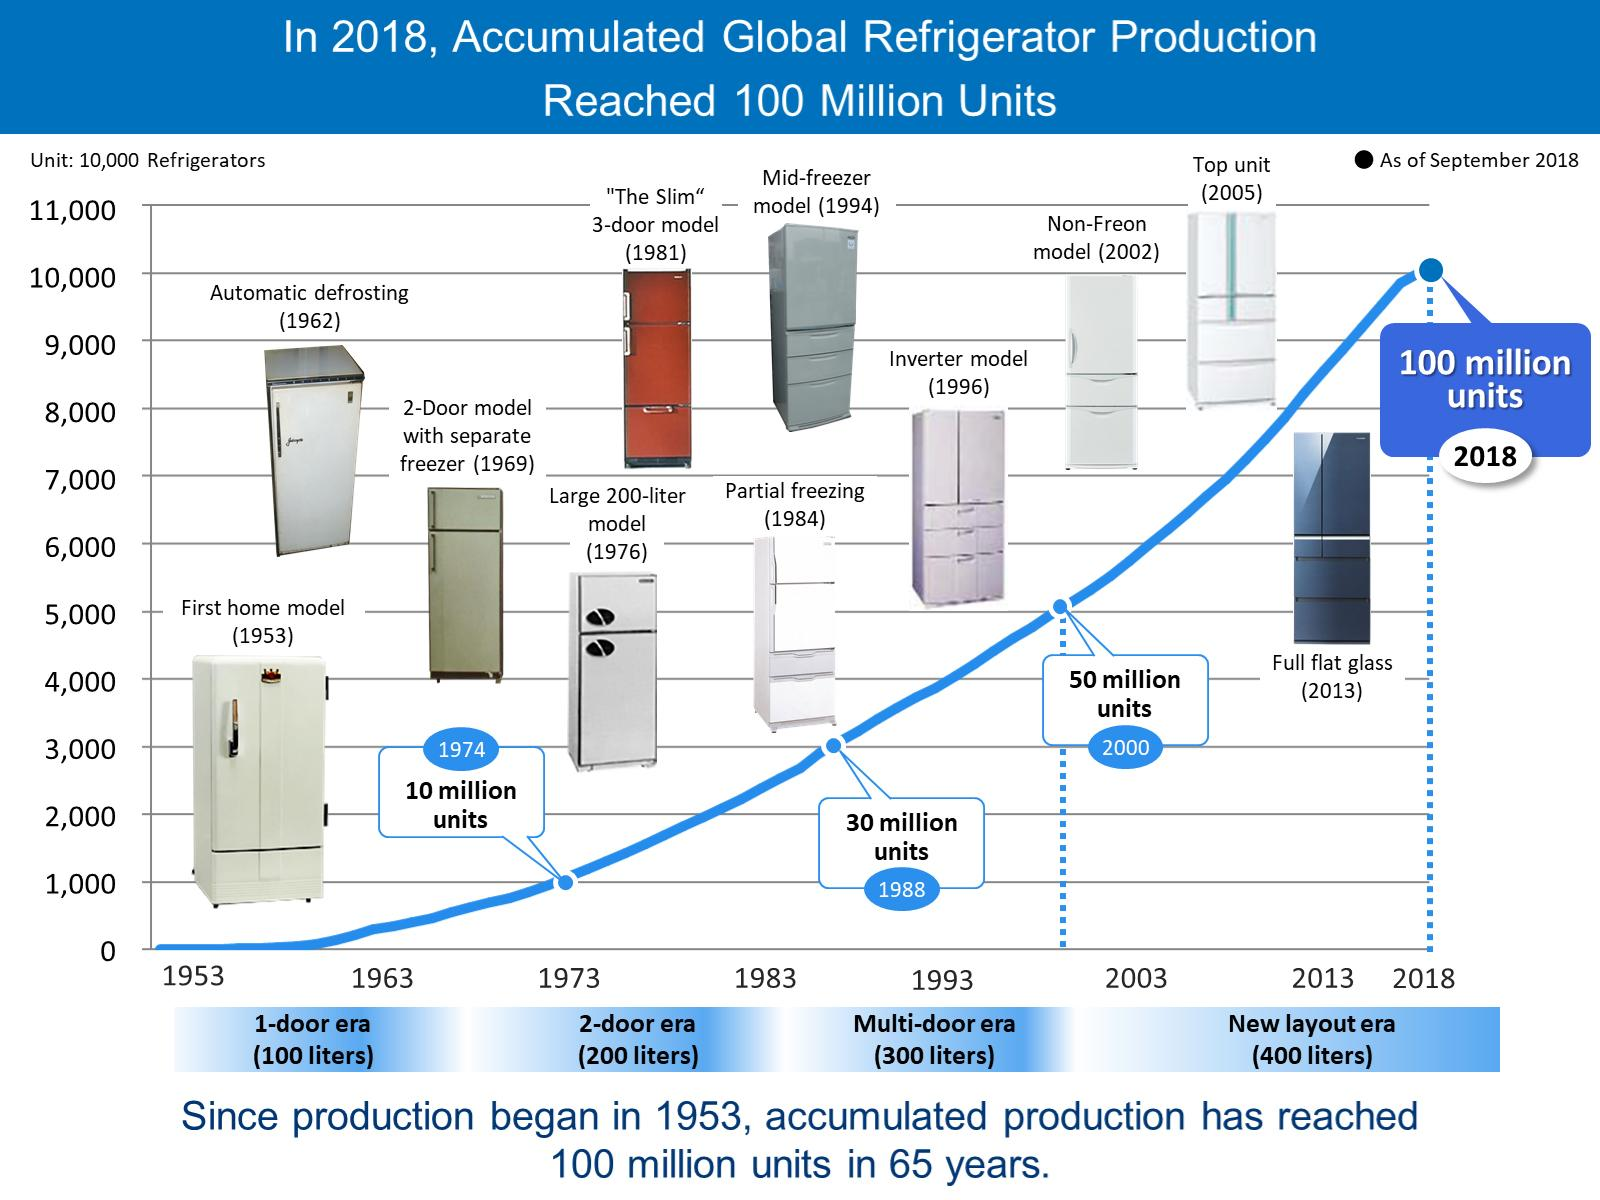 image: Progress in refrigerator production figures and key features